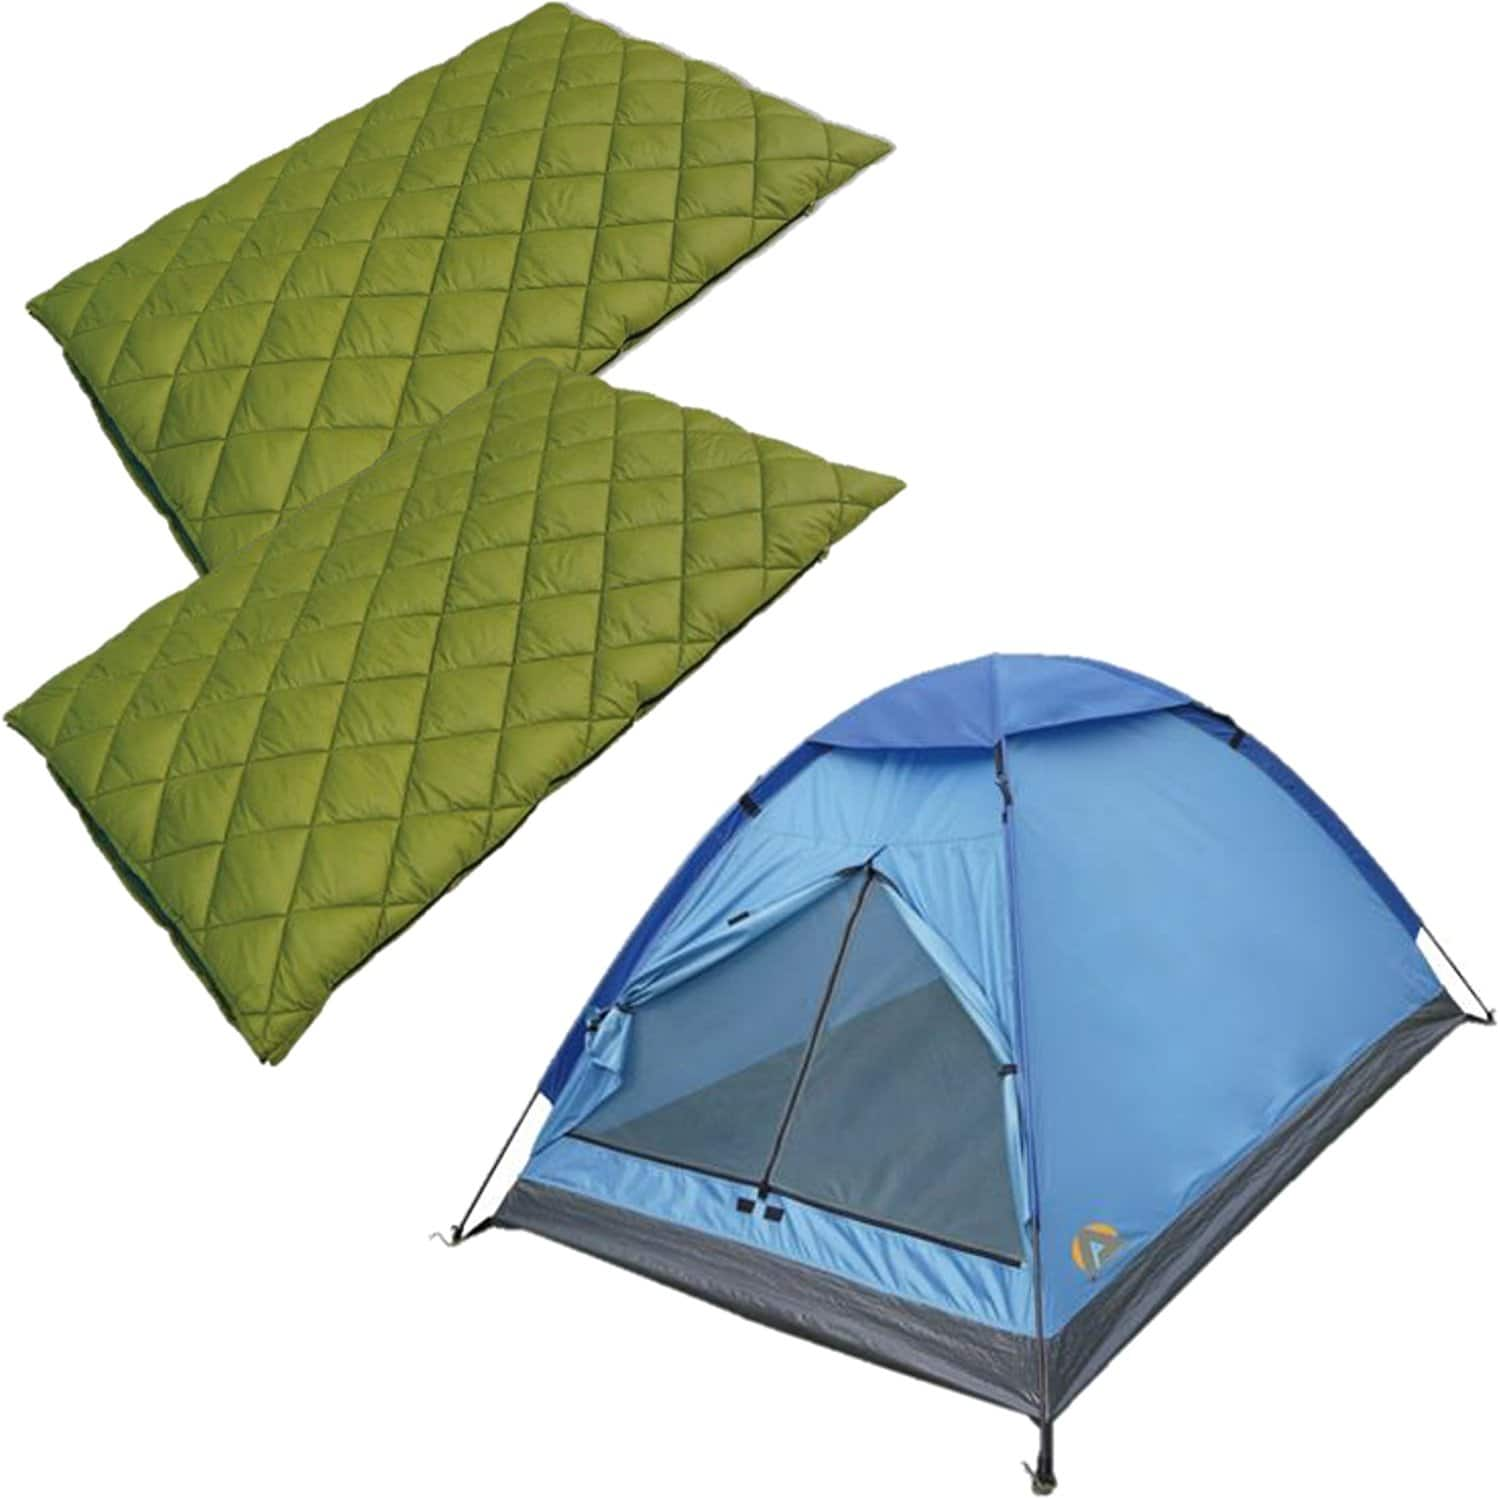 High Peak 3-Person Tent + (2) Florida 20 Sleeping Bags FS $29.98